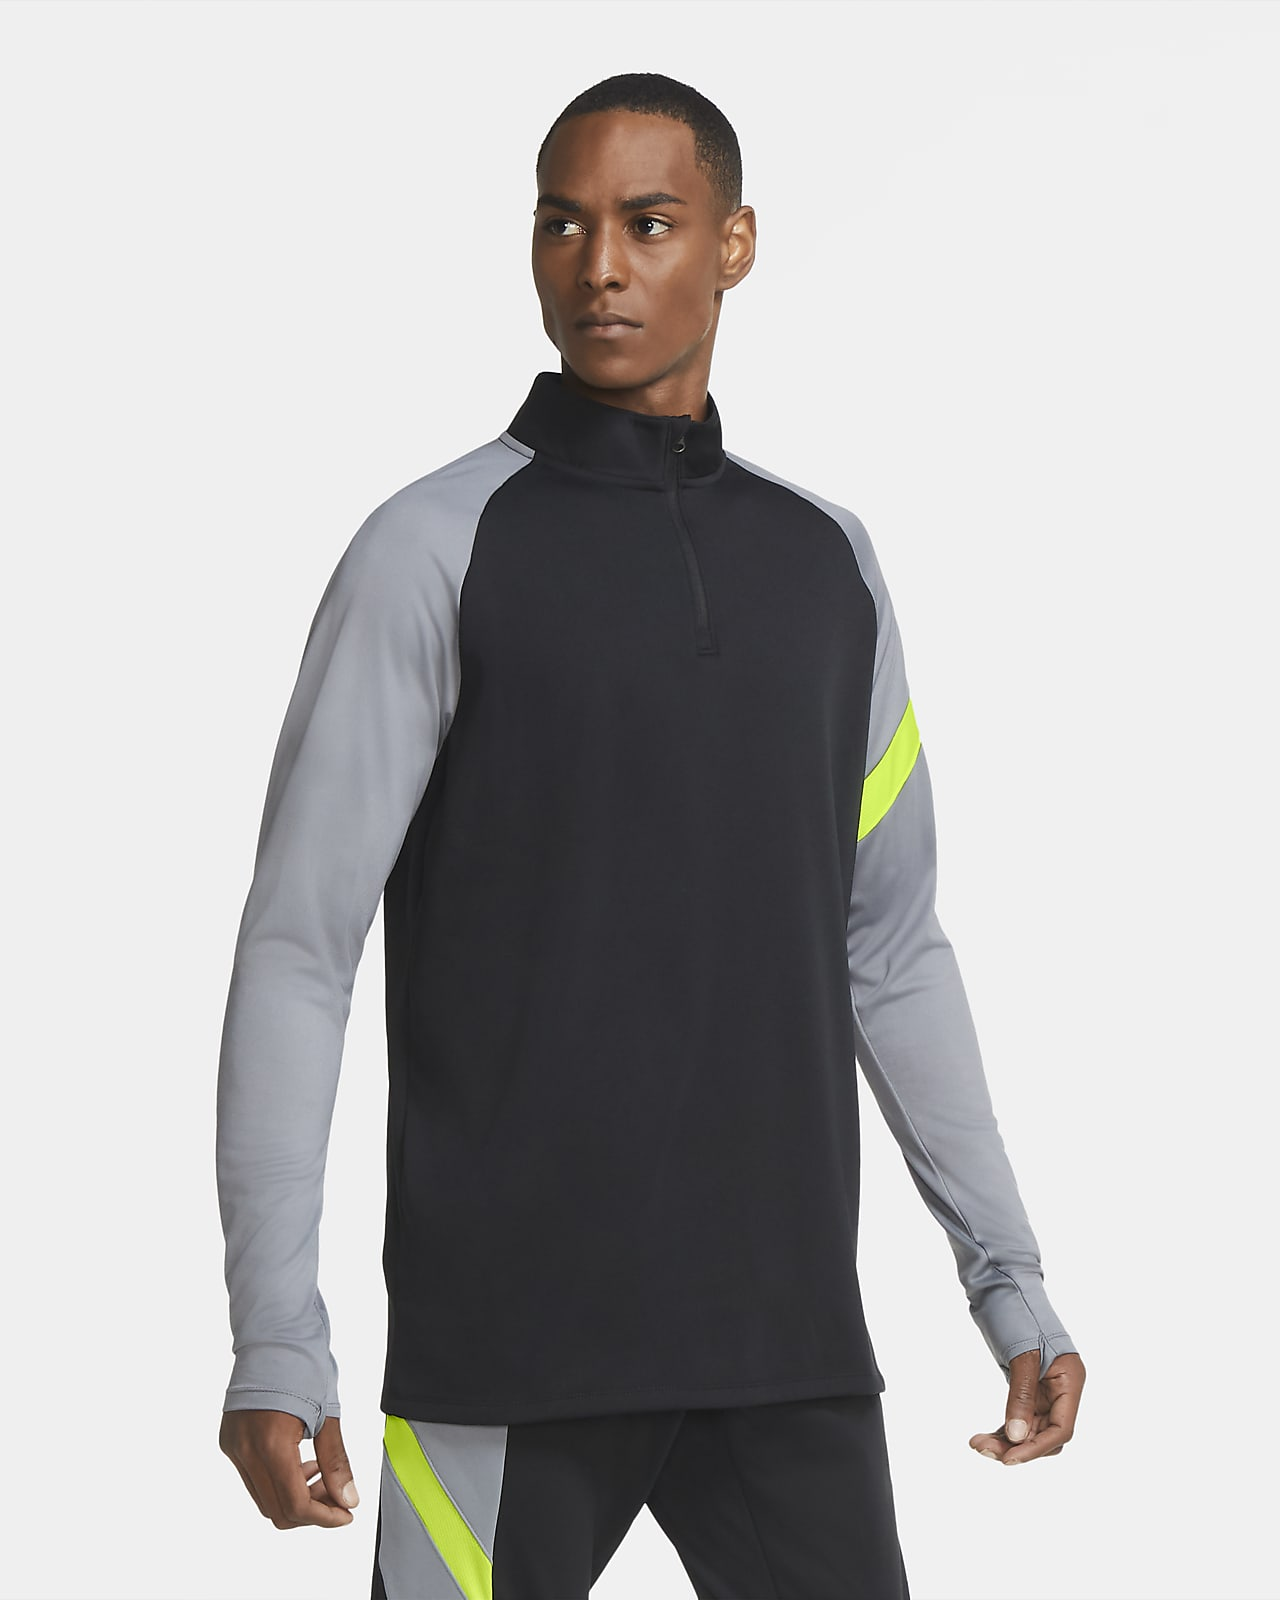 Nike Dri-FIT Academy Pro Men's Soccer Drill Top